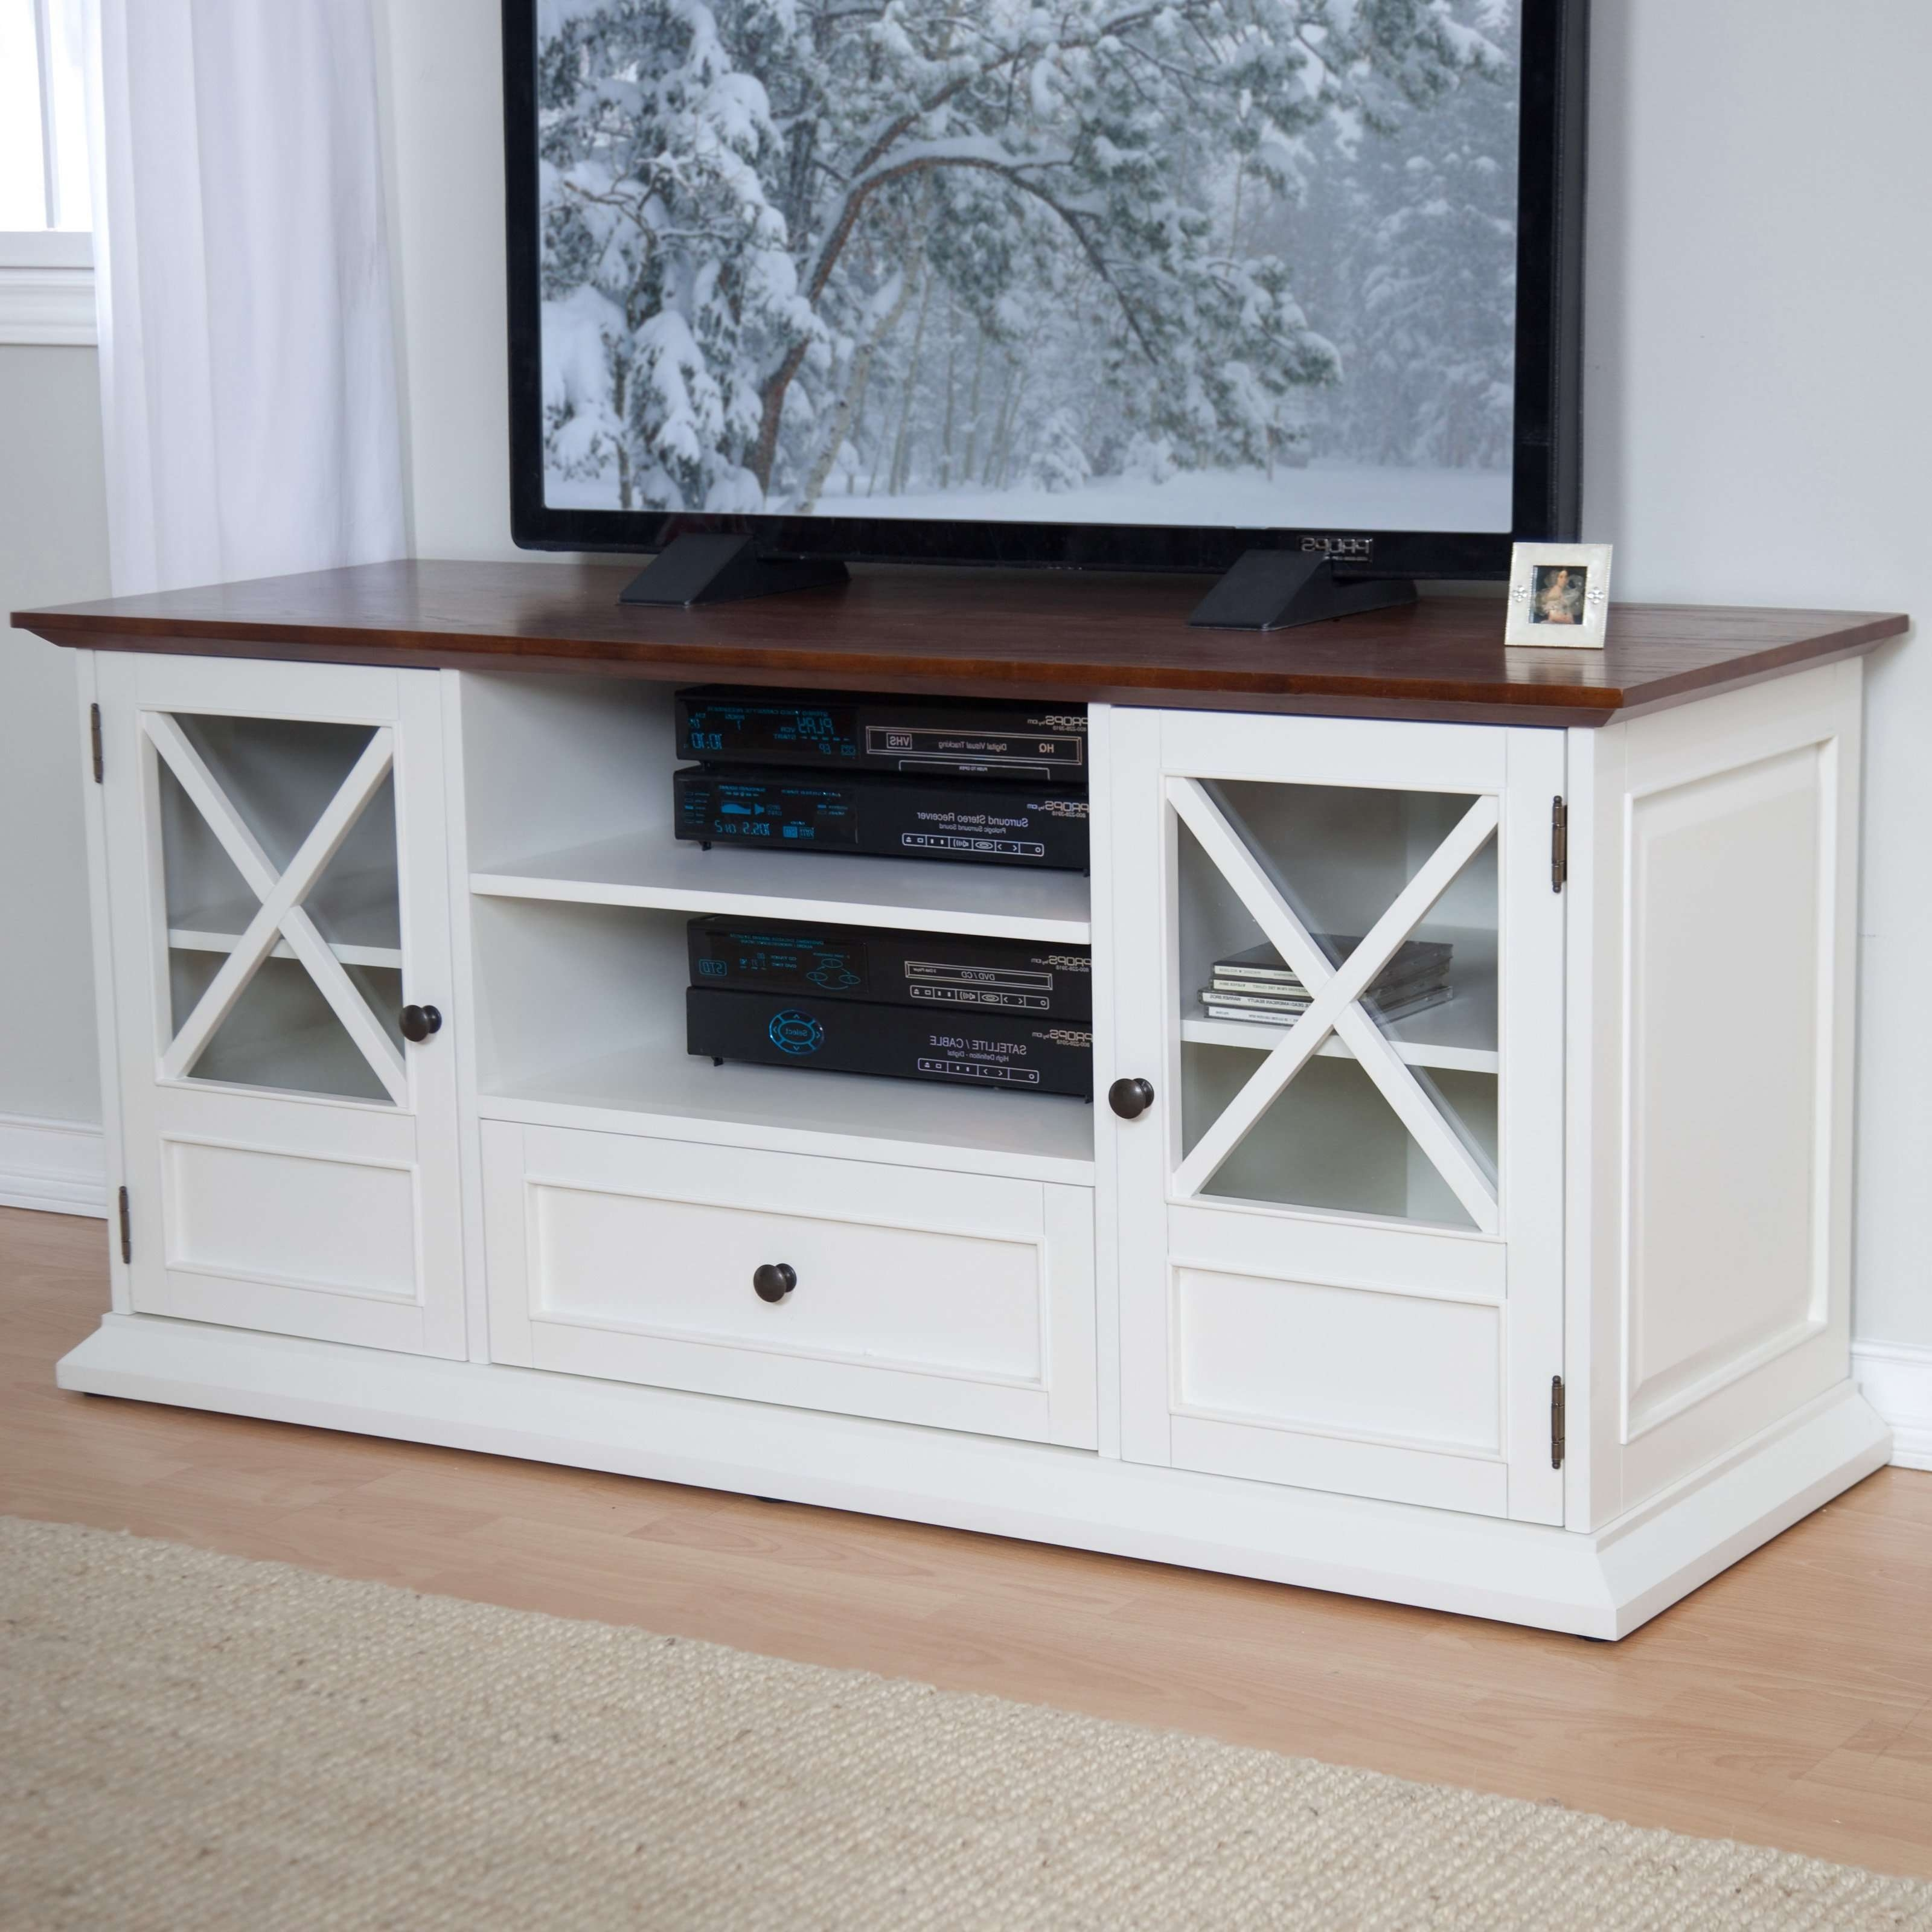 Tv Stands & Entertainment Centers | Hayneedle Within Rustic White Tv Stands (View 2 of 15)